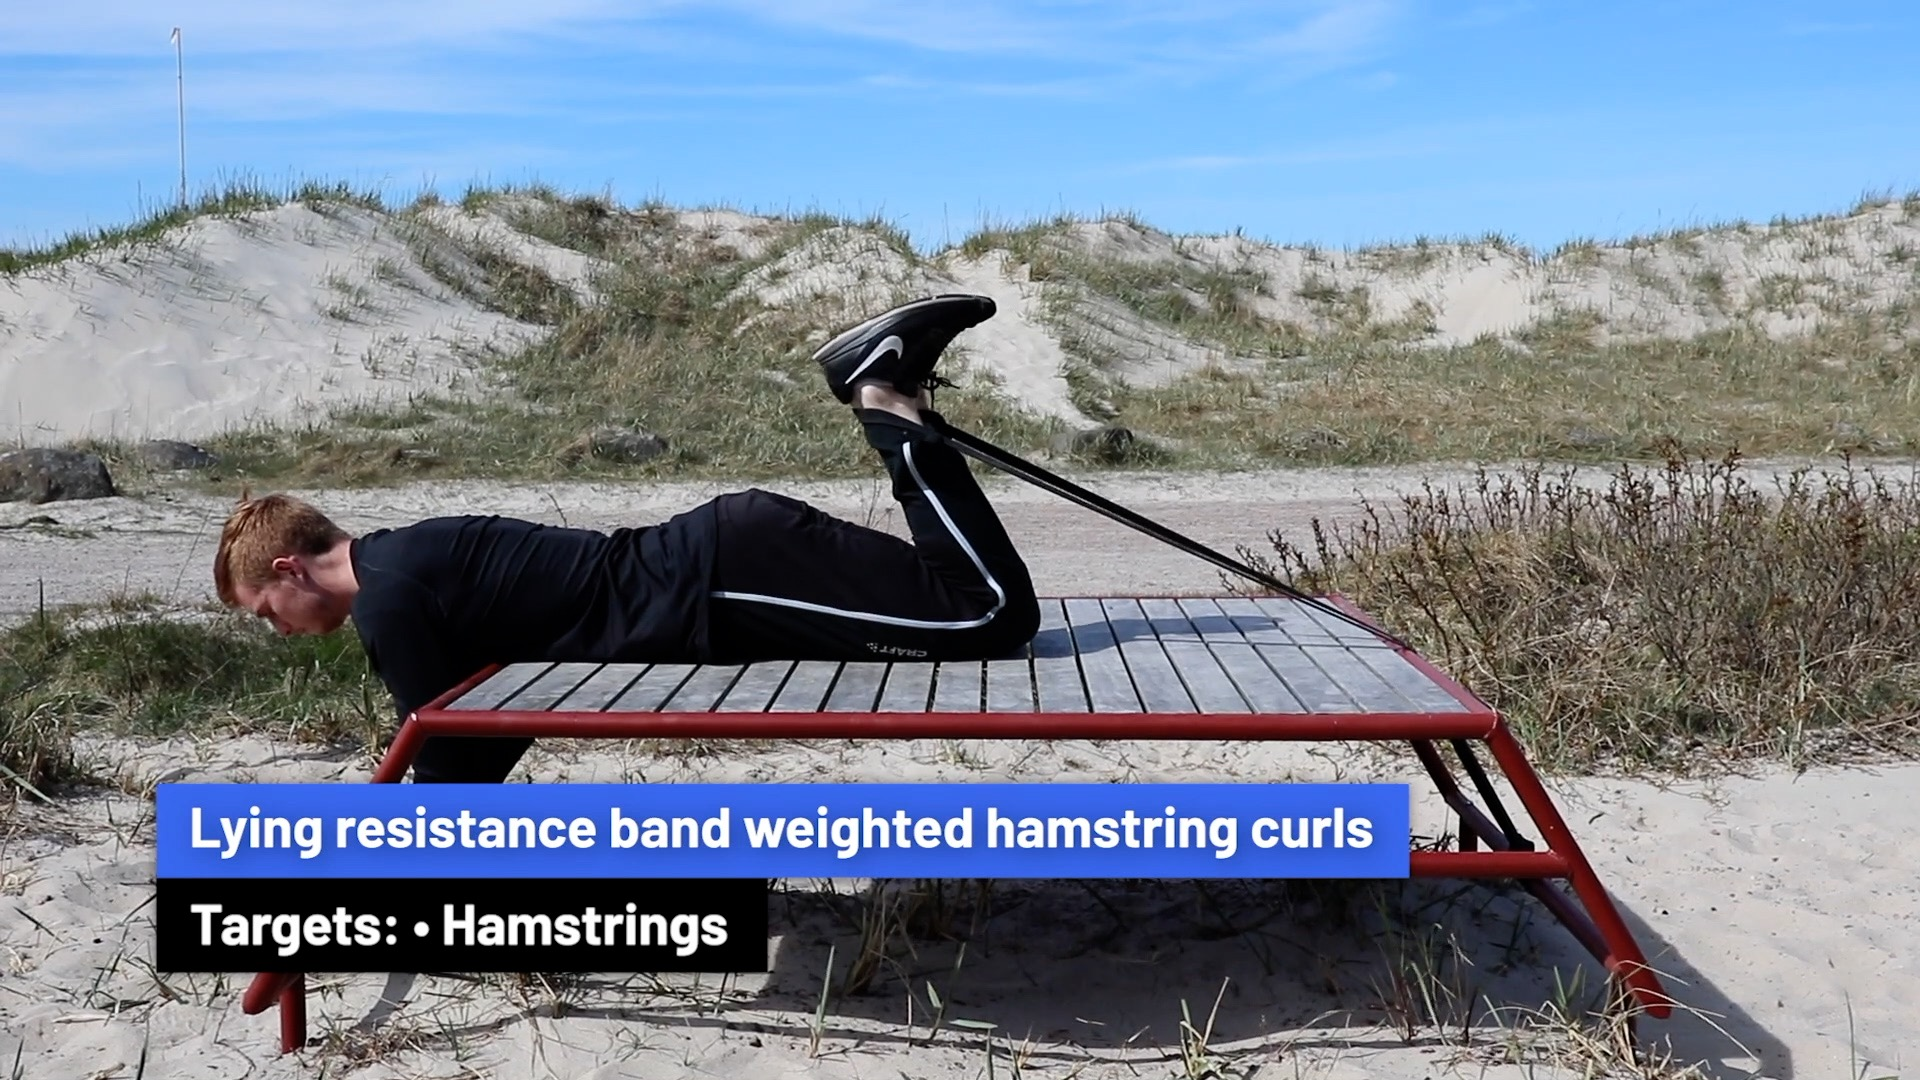 Lying resistance band weighted hamstring curls